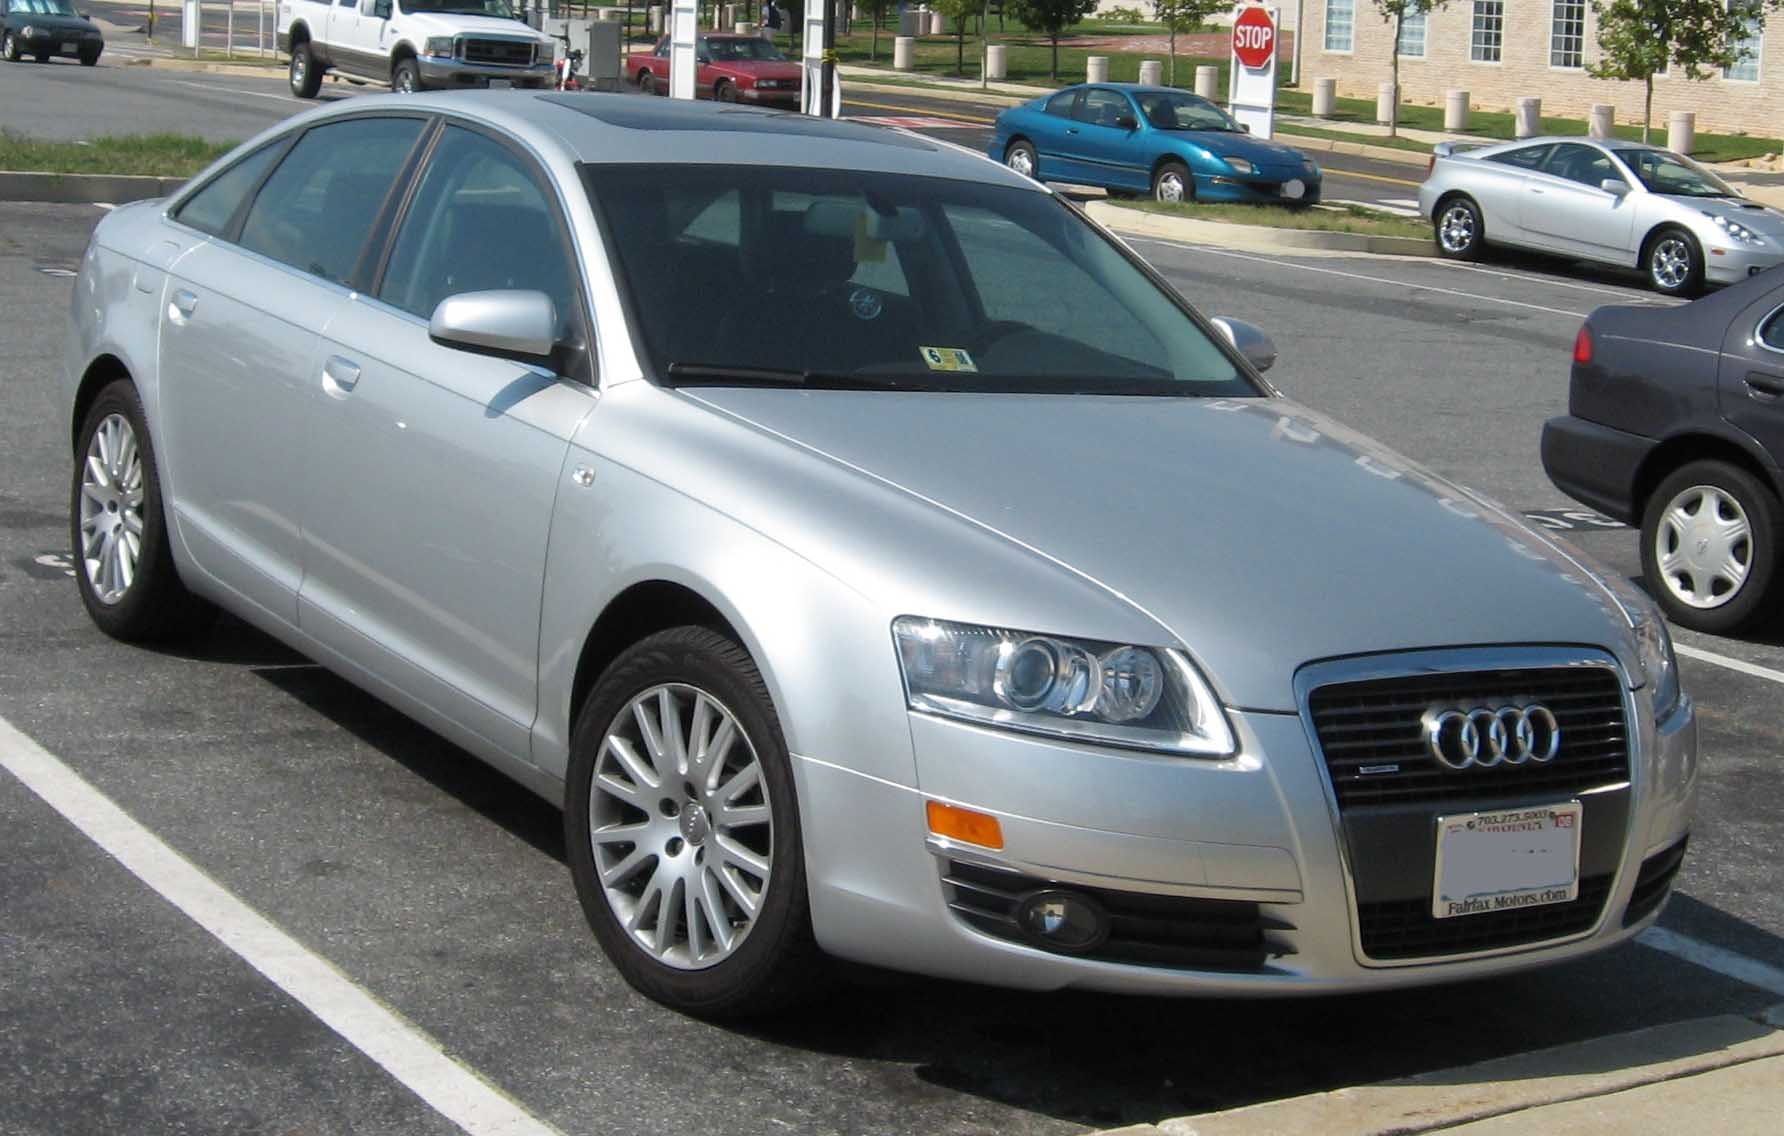 File:05-07 Audi A6-3.2 in College Park, Maryland.jpg